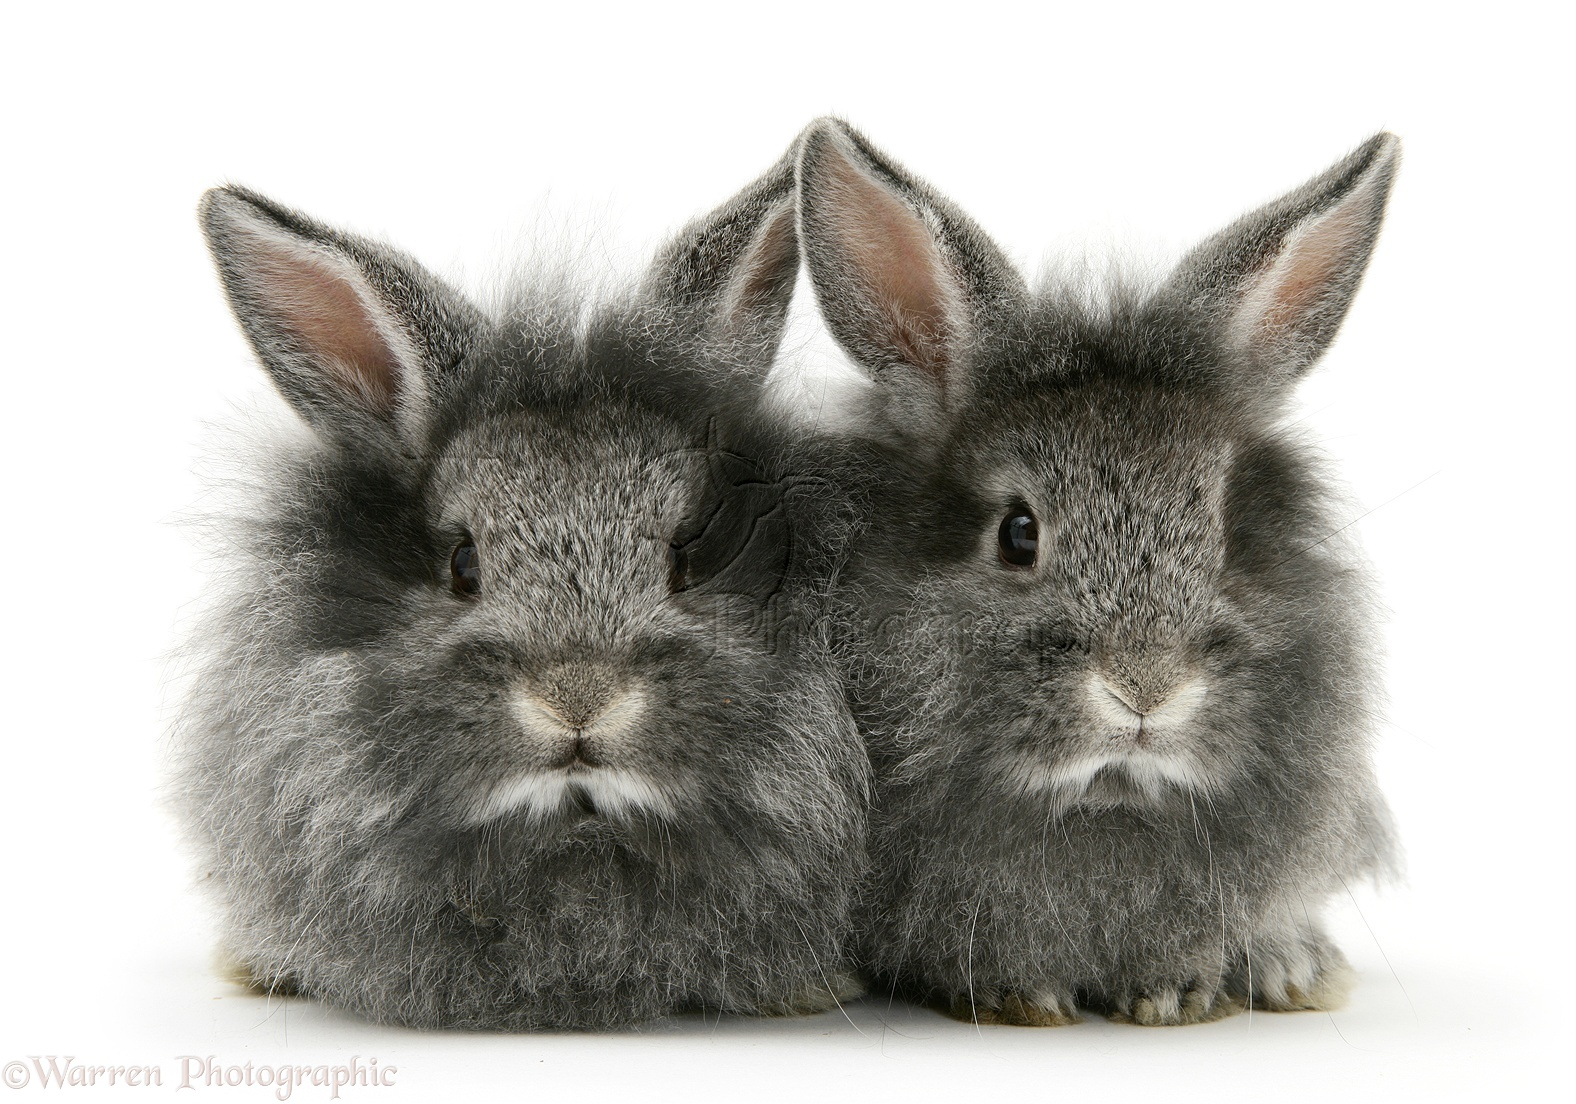 Baby silver Lionhead rabbits photo - WP10820